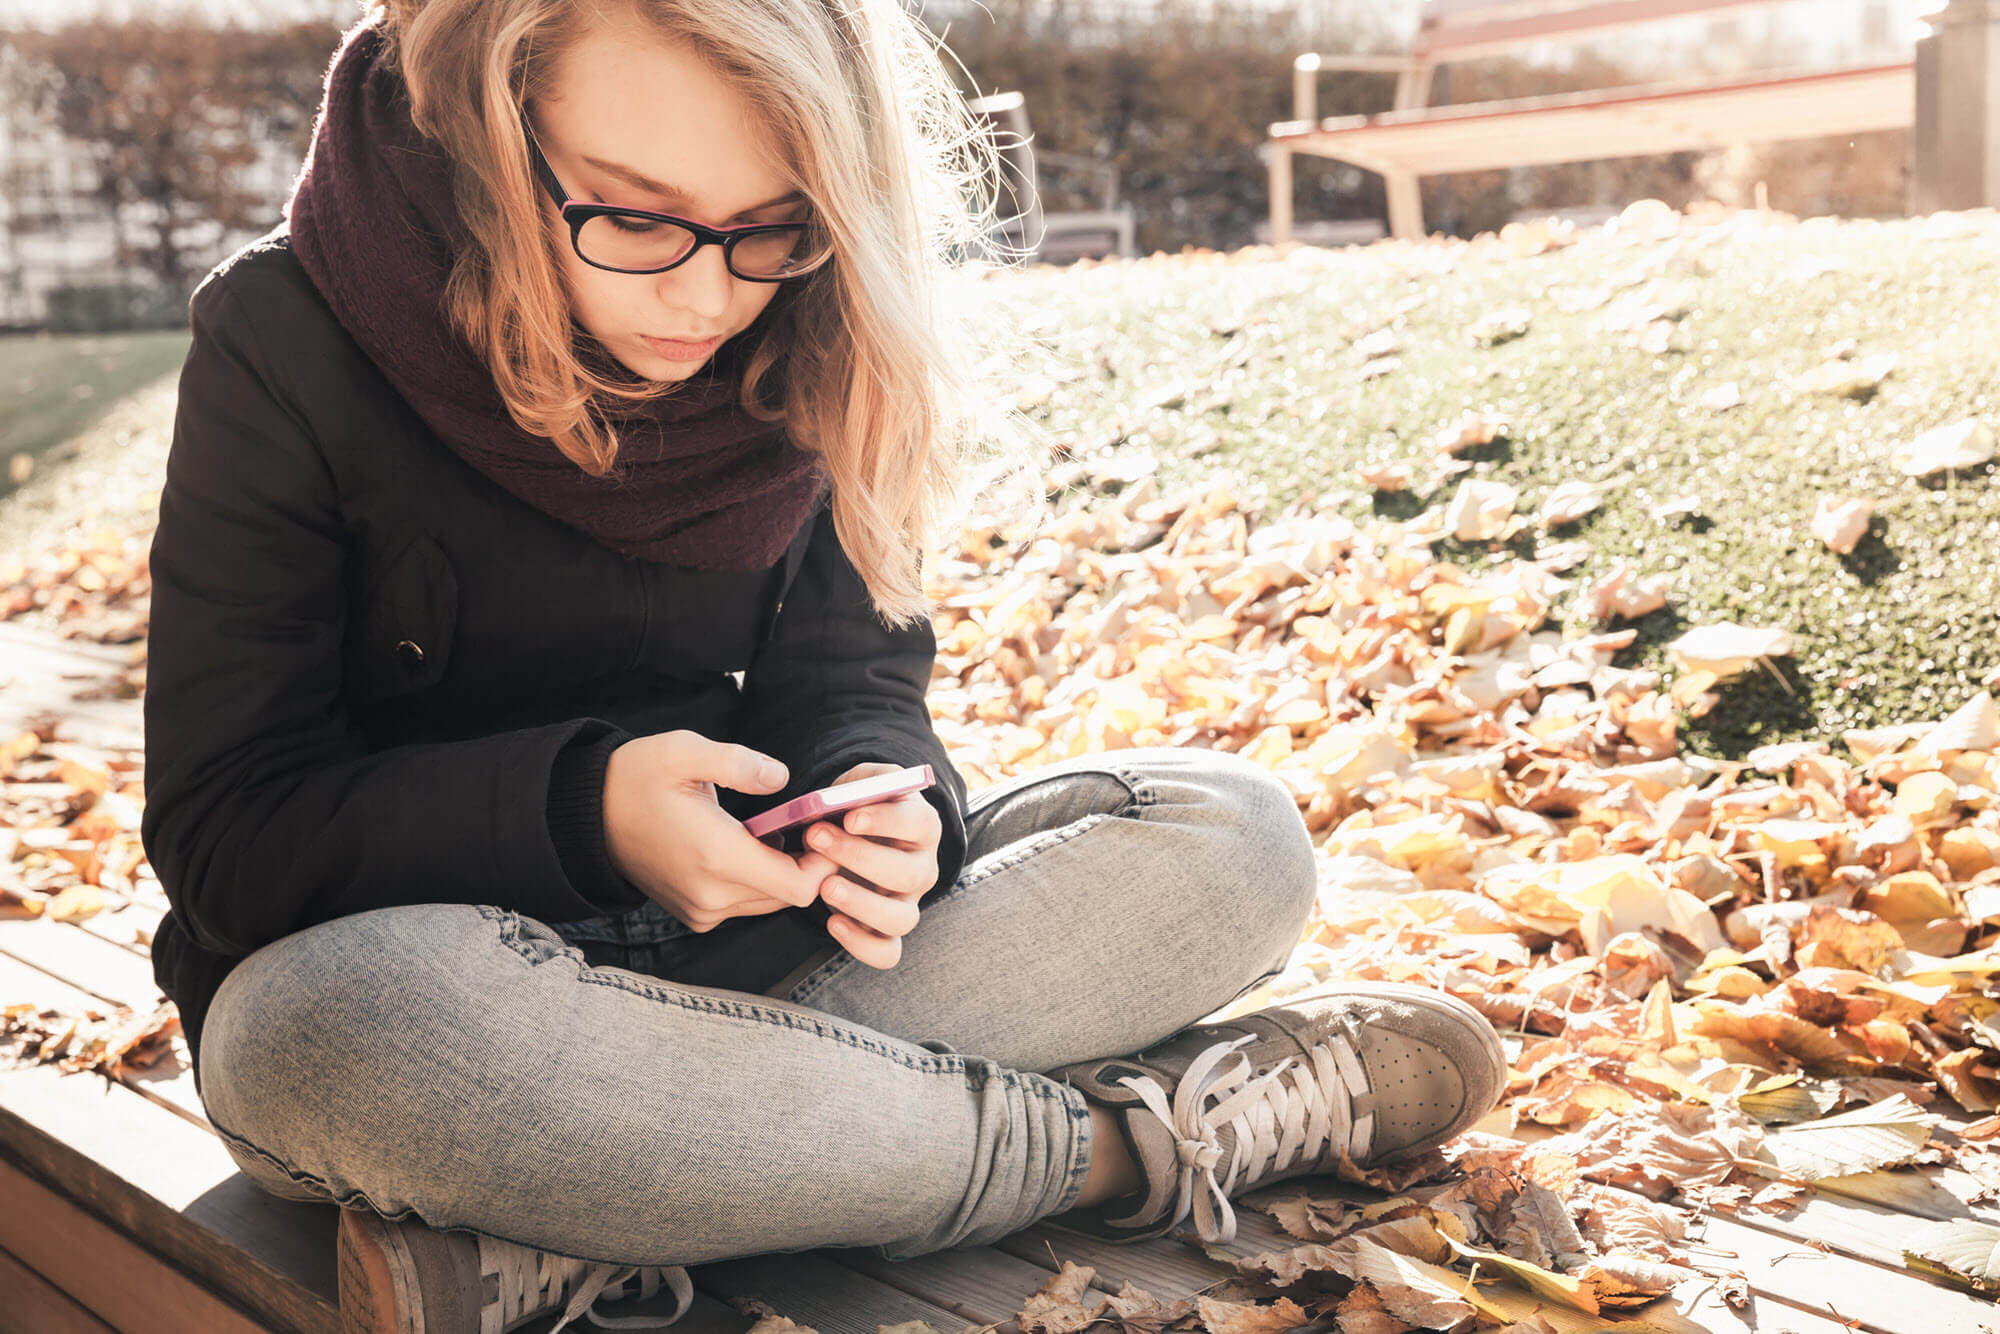 Girl in park sends message on her phone. Model photo.